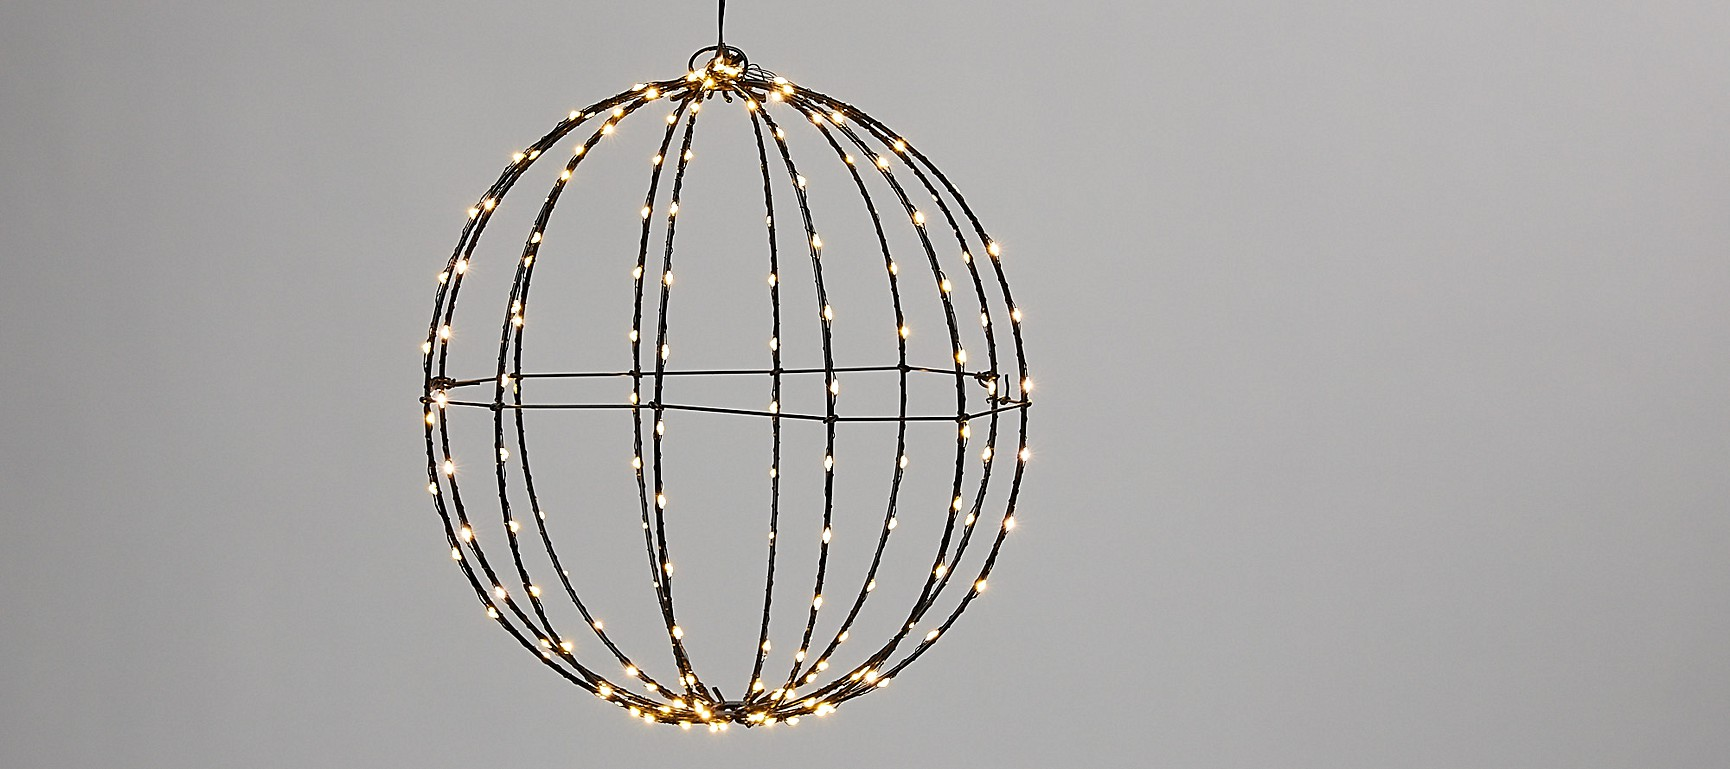 This hanging pendant sphere is suitable for both house and garden